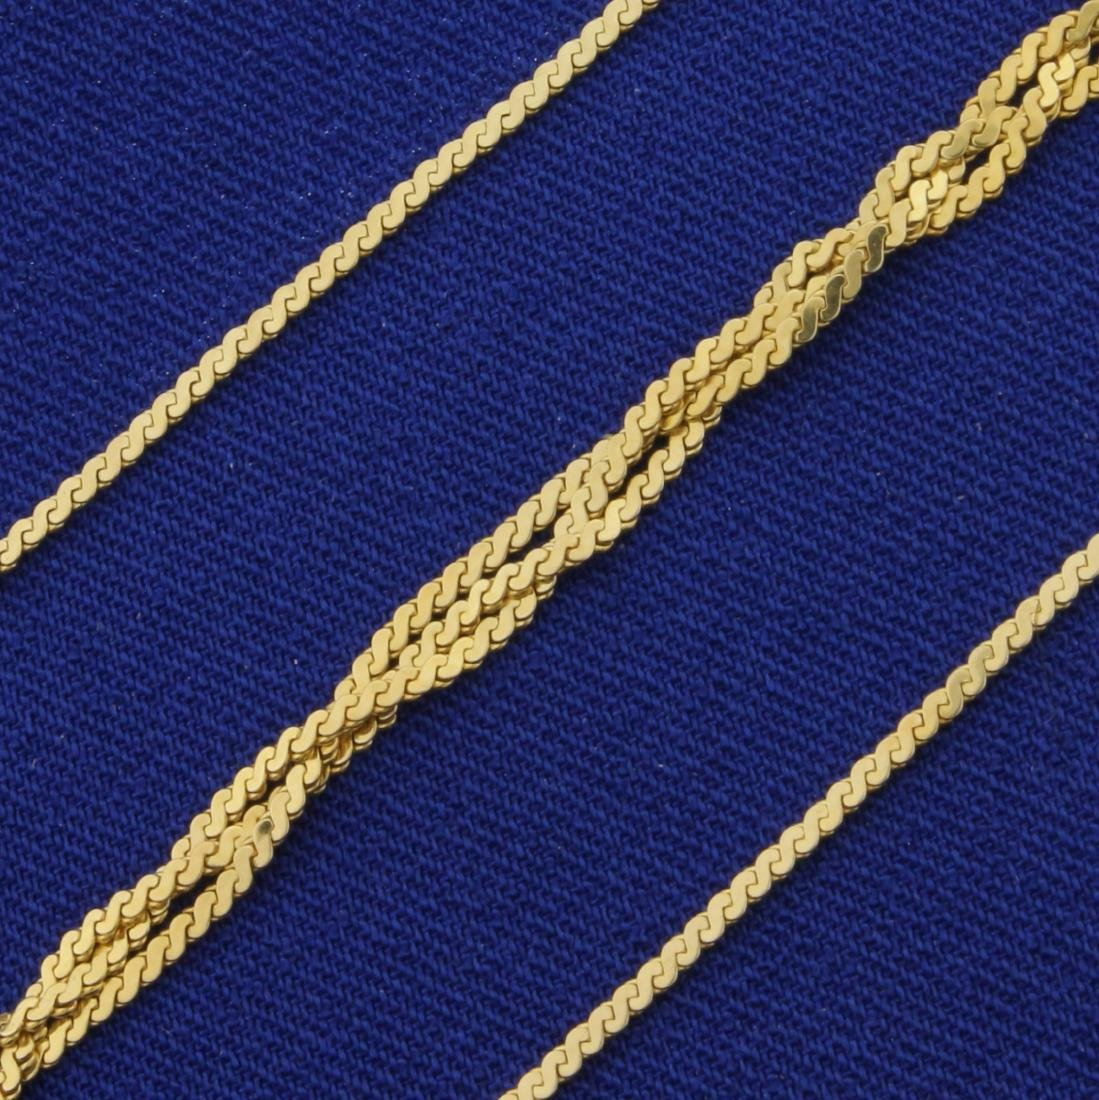 Italian Made Braided S-Link Neck Chain in 14K Yellow - 2